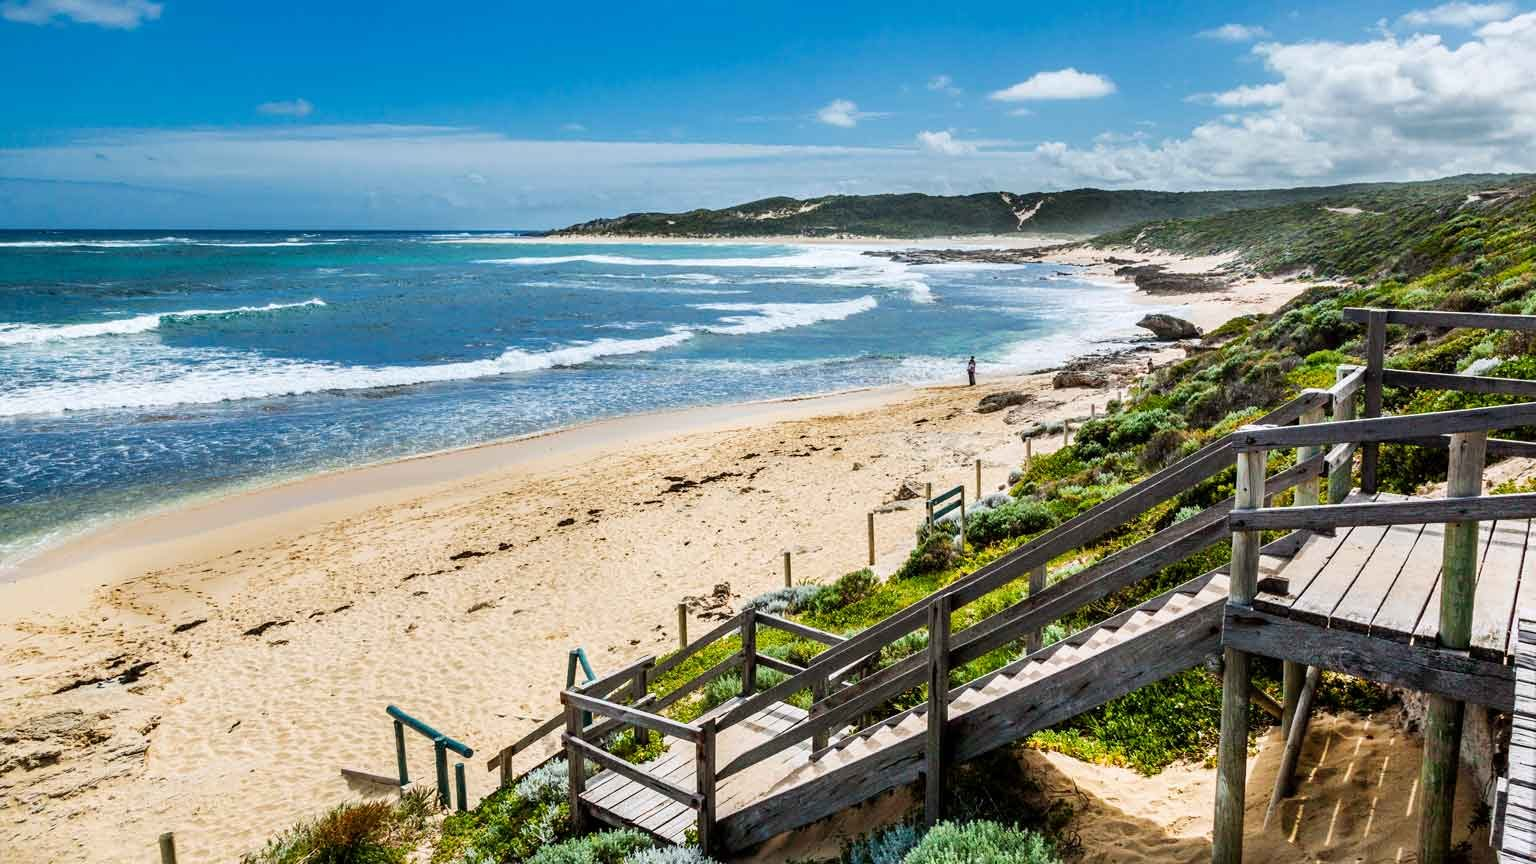 Western Australia, South West Region, Margaret River; view of Prevelly Beach, a popular surf beach at the Margaret River estuary.